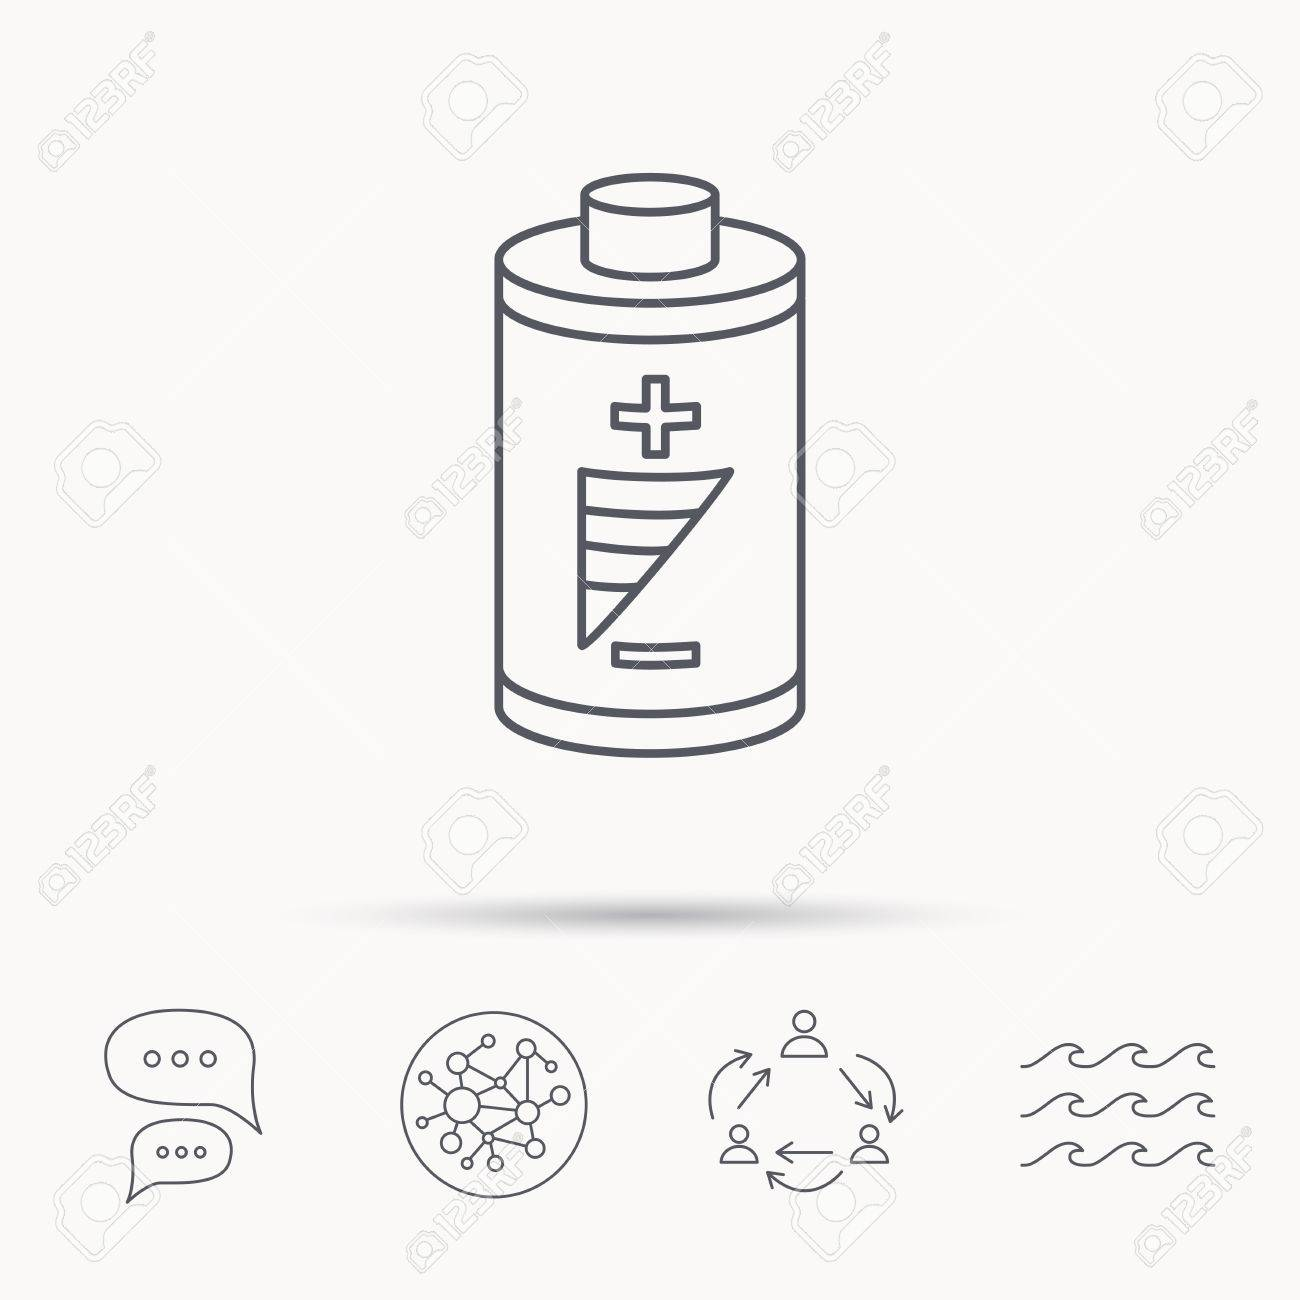 Amazing electrical power symbols images electrical and wiring pretty symbol of electrical power images electrical diagram biocorpaavc